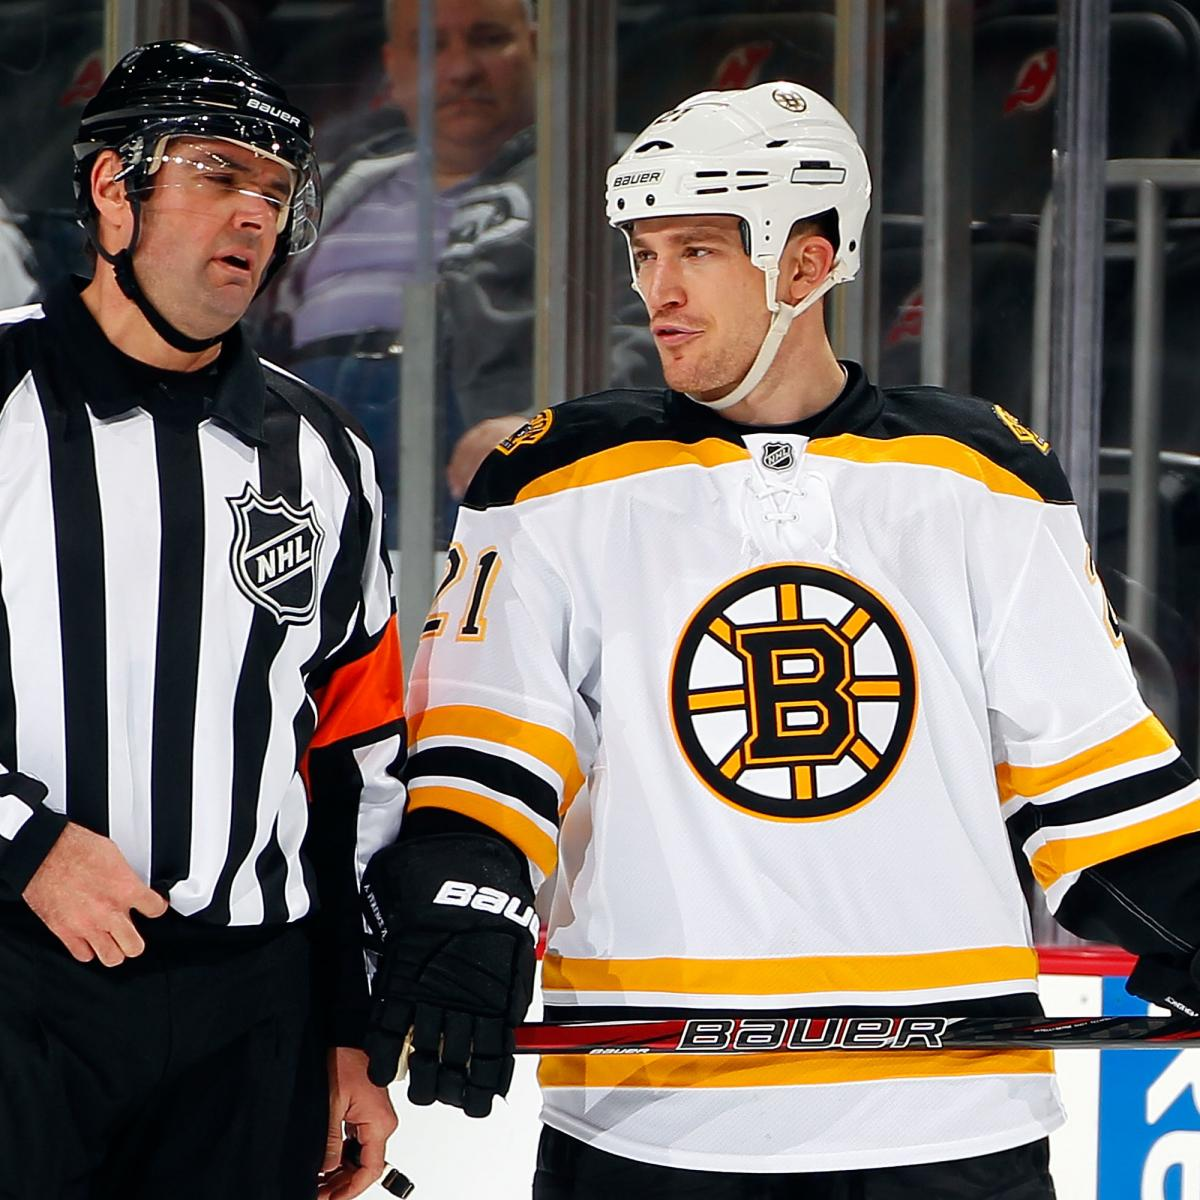 Boston Bruins: Andrew Ference Suspended 3 Games For Hit On